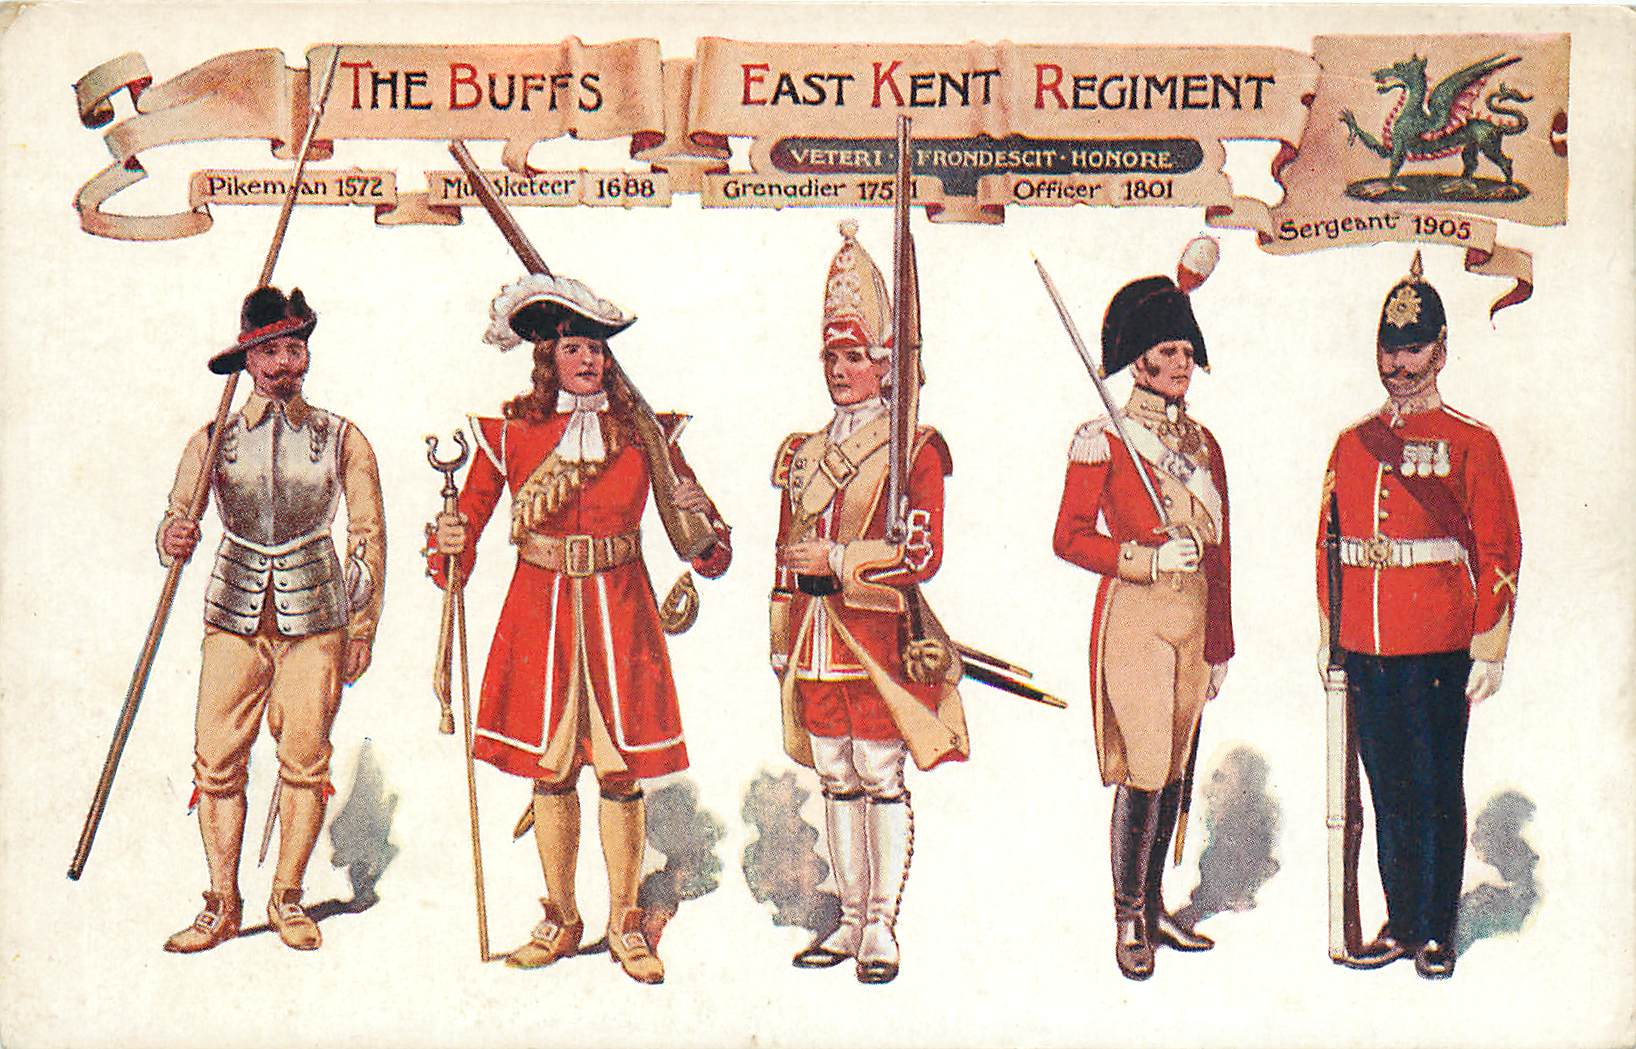 Officers of The Buffs East Kent Regiment